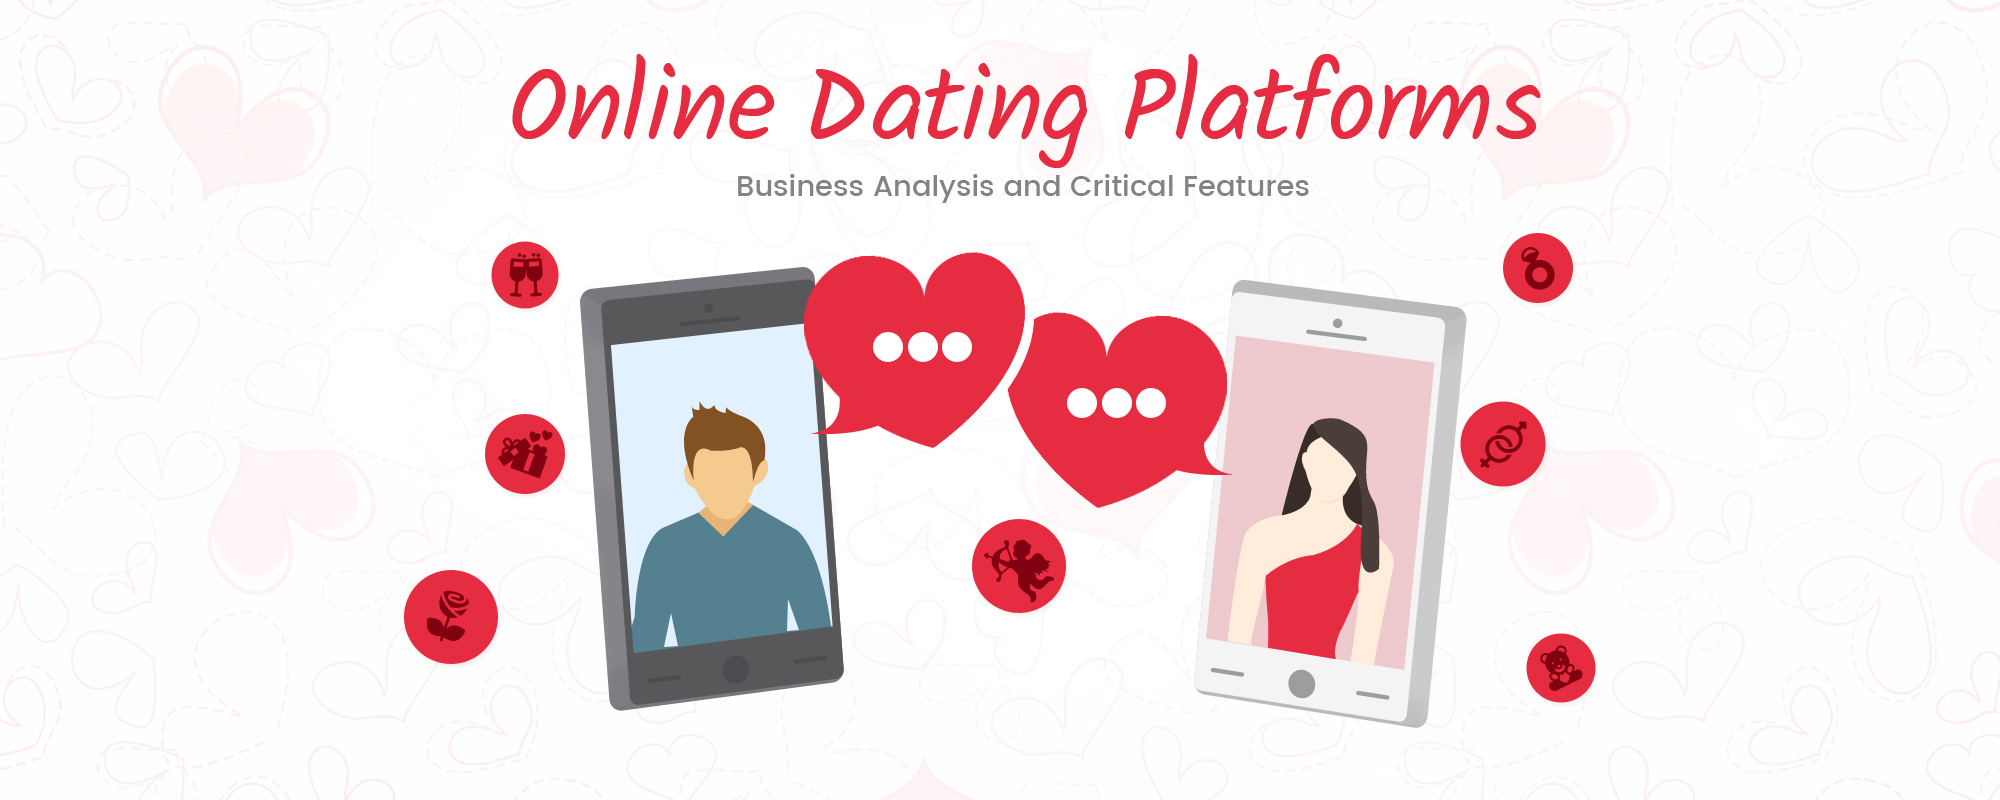 FirstMet online dating